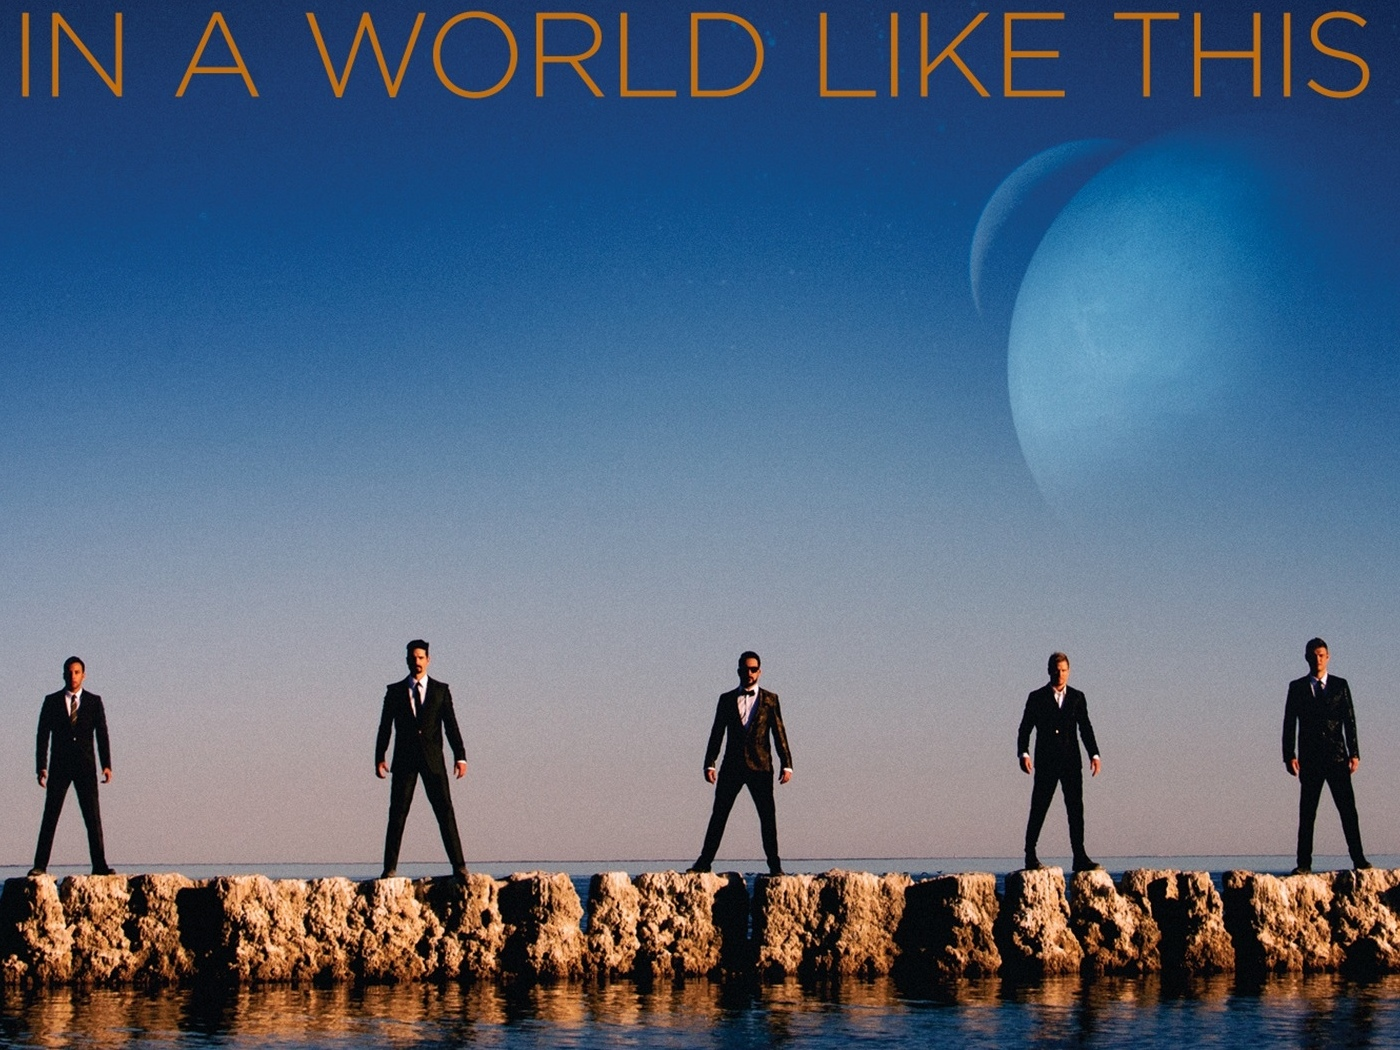 Backstreet Boys In A World Like This Album Wallpapers ...